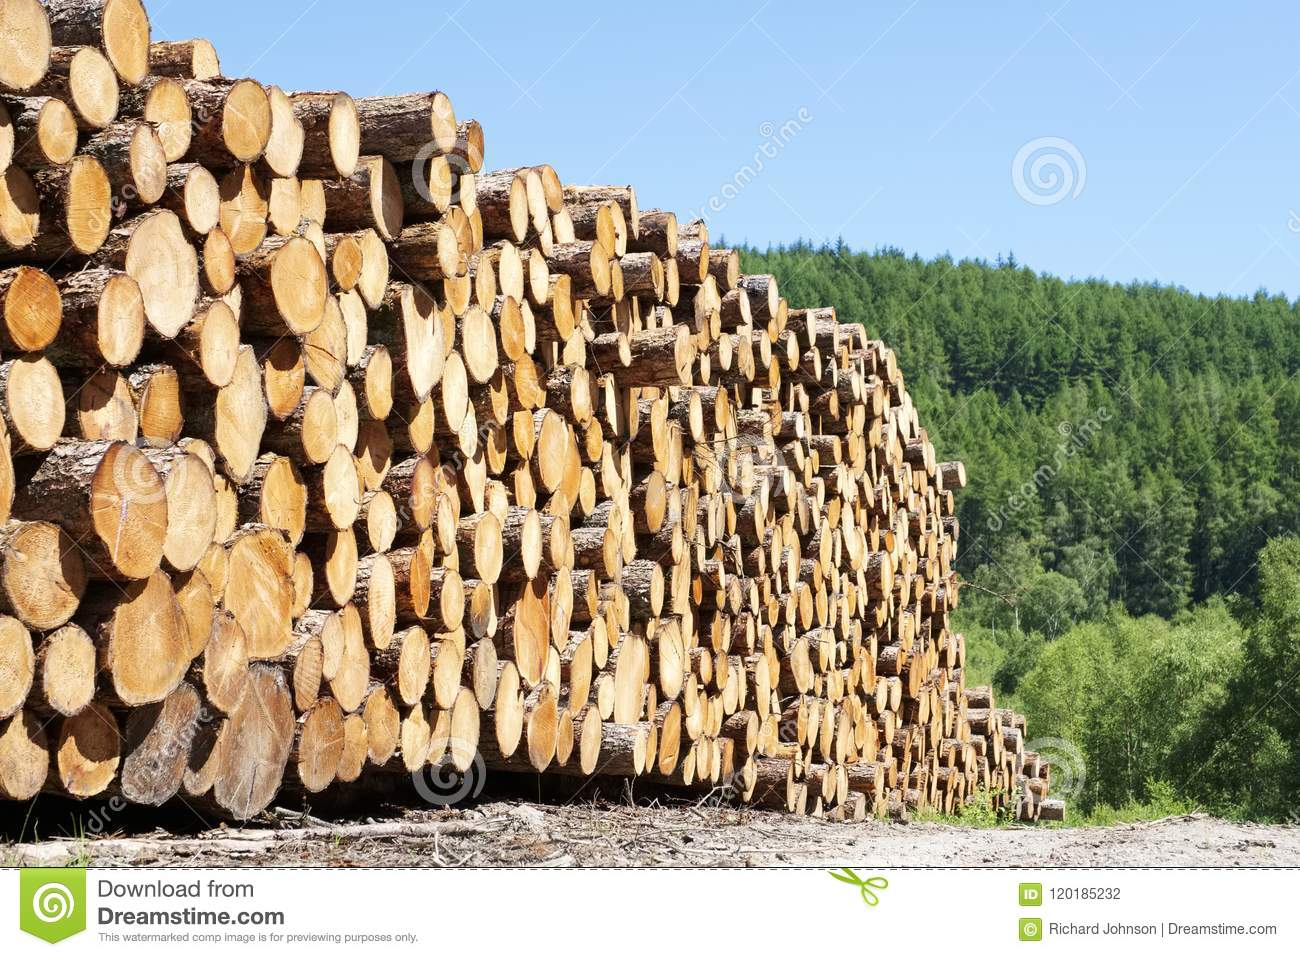 Chopped wood logs stacked in forest woodlands renewable green biomass energy summer sun Loch Lomond blue sky